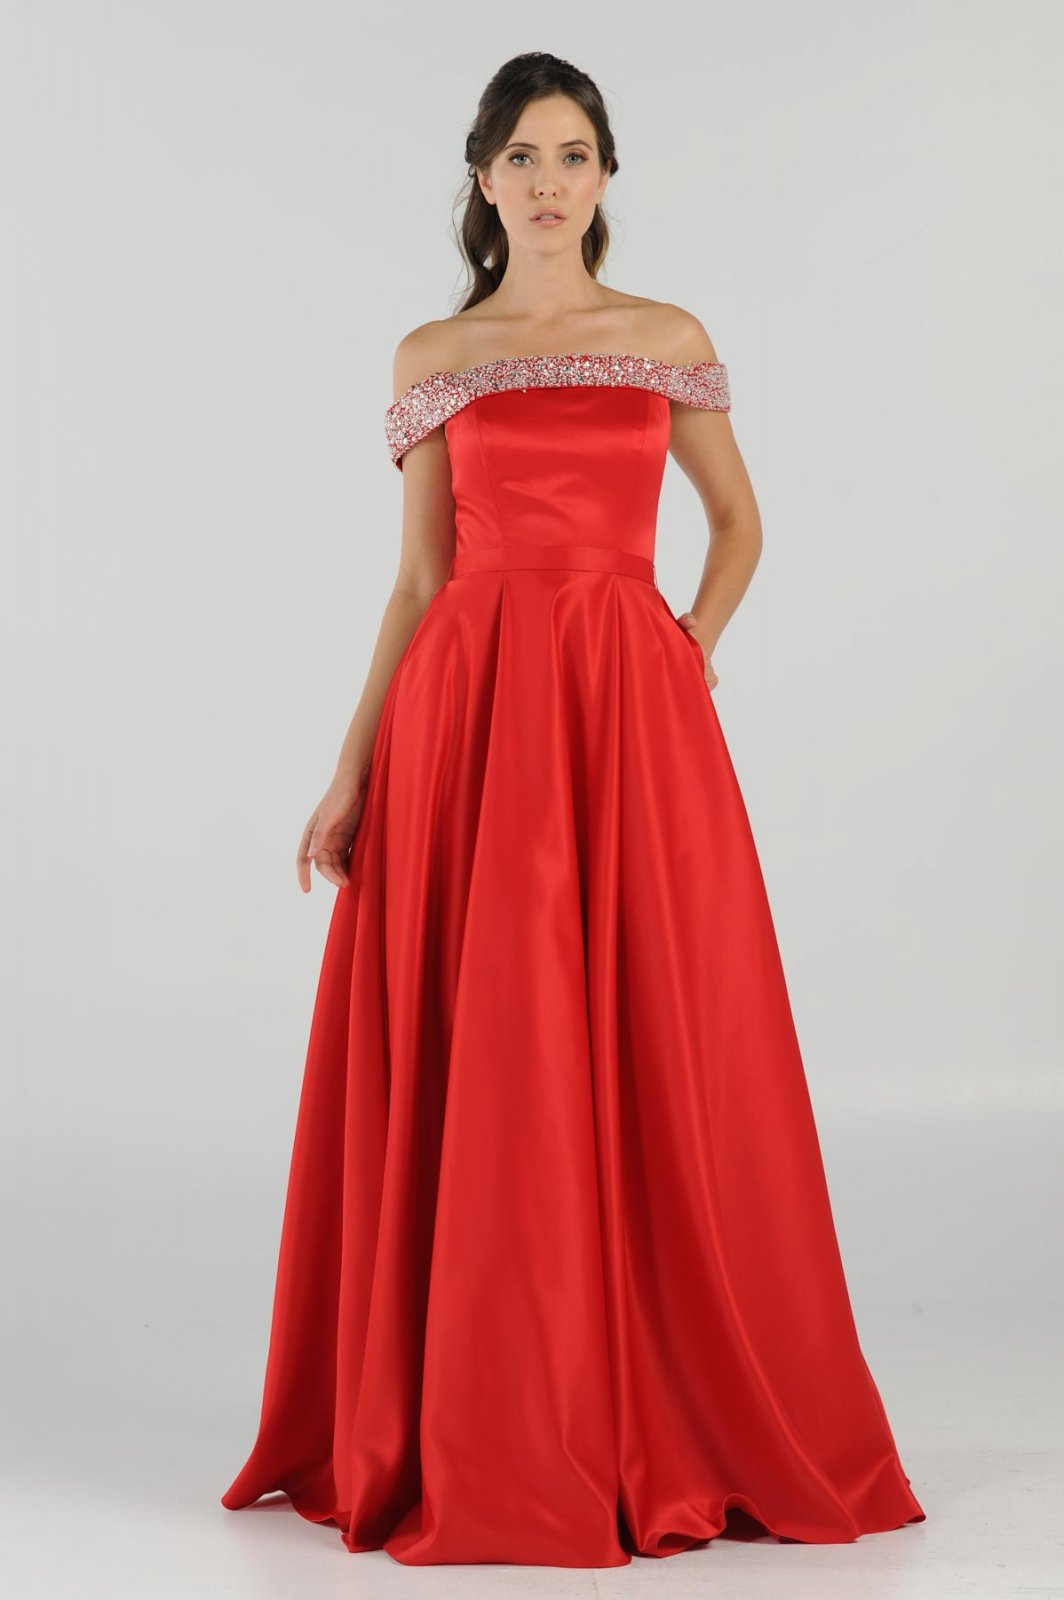 Red Of The Shoulder Prom Dress With Bling Bling Neckline